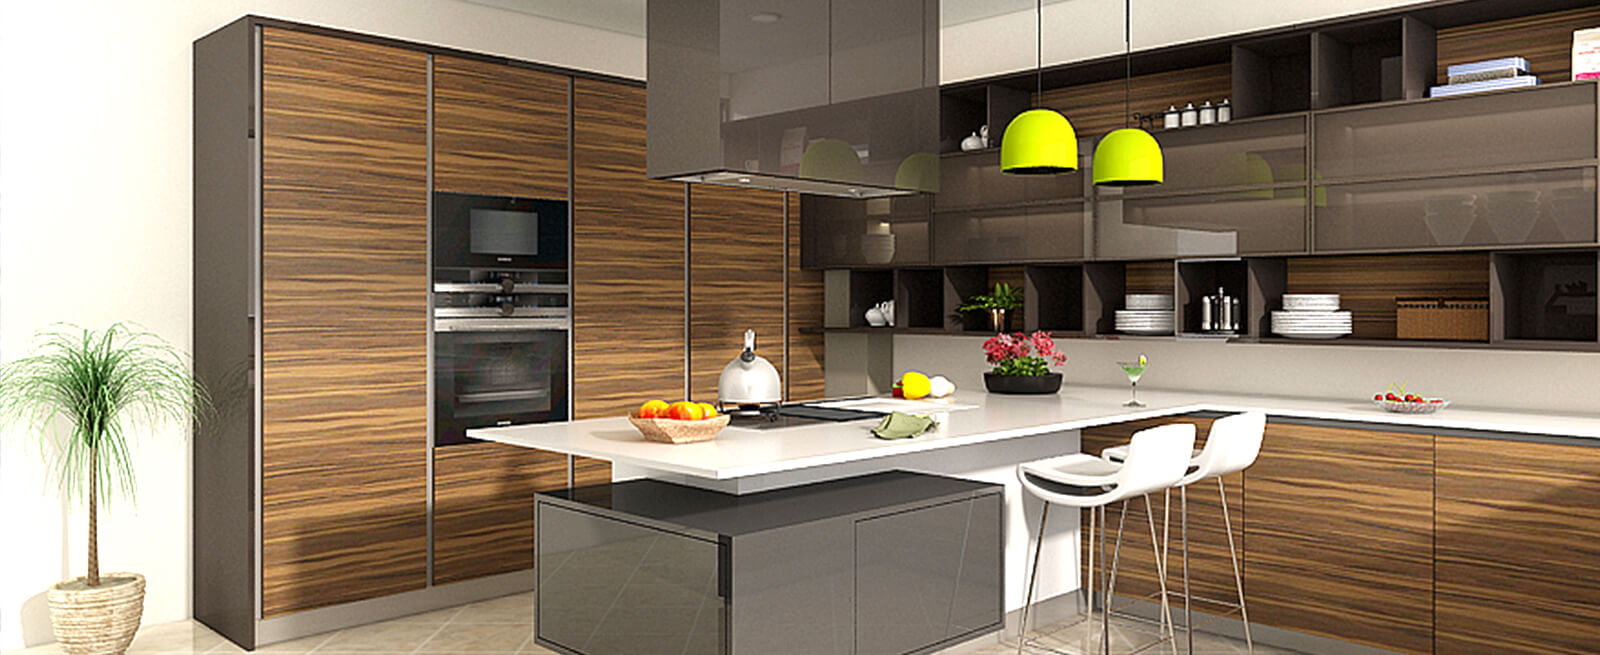 Kitchen Design Room Kitchen Modular Kitchens Wardrobes Living Room Bedroom Interior